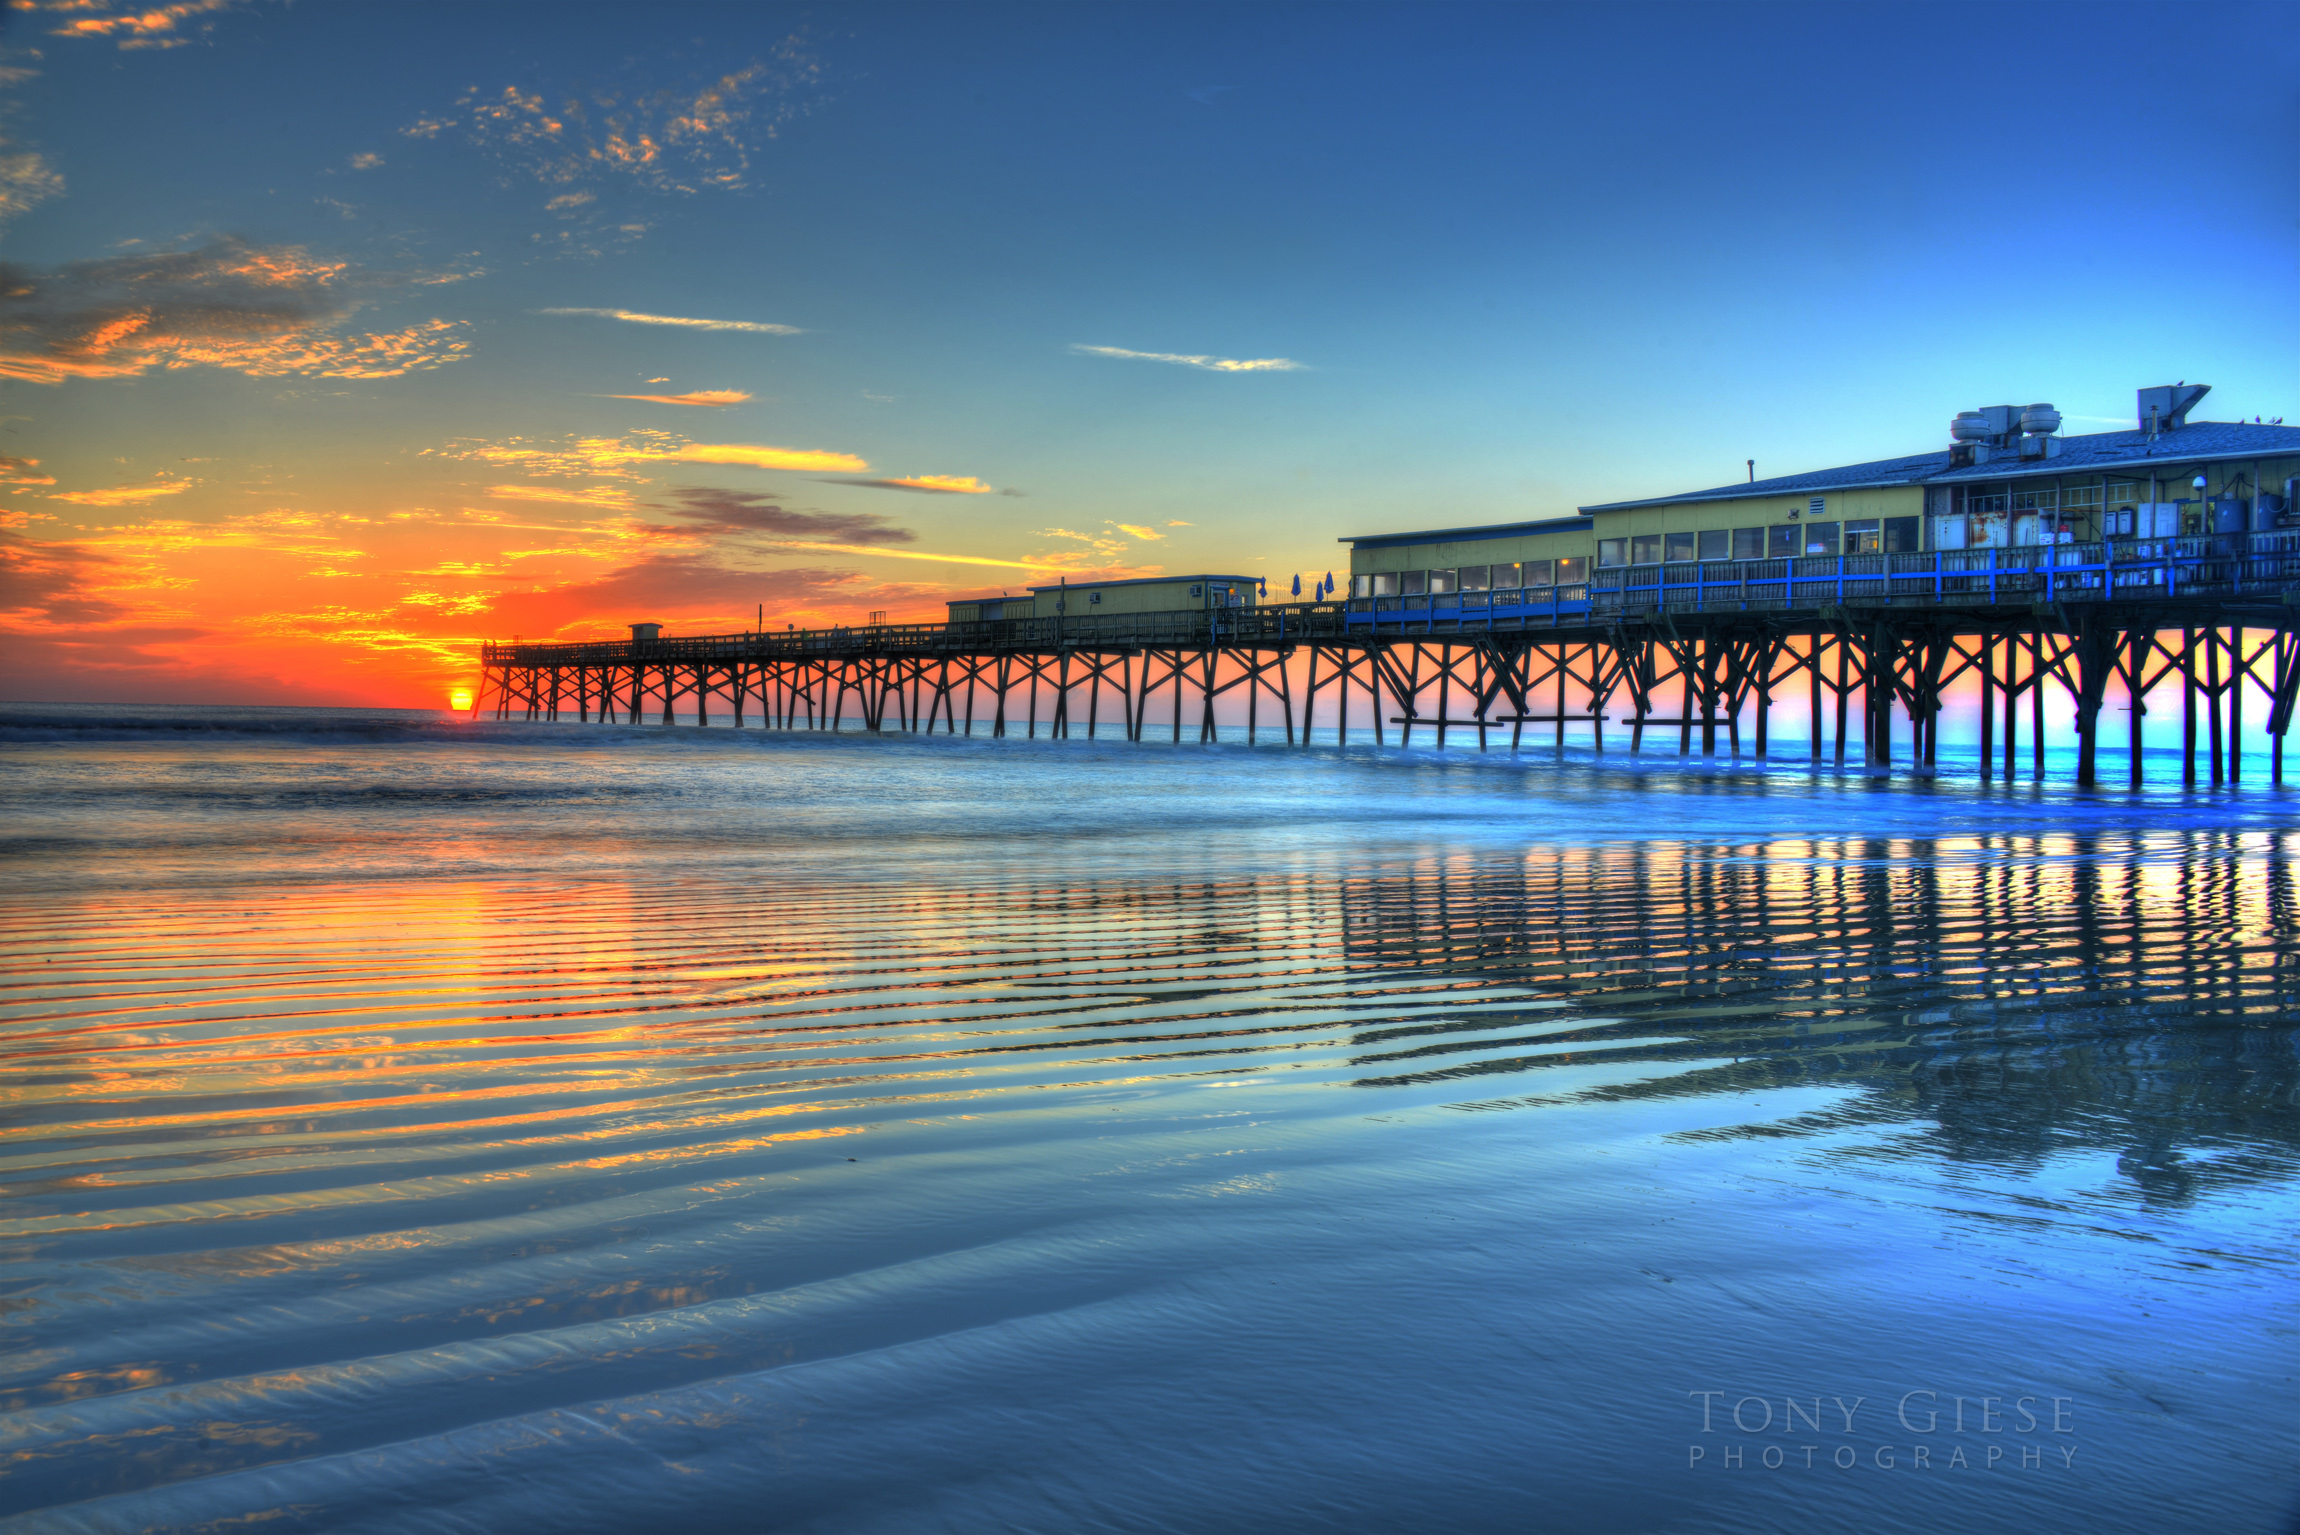 Beach Reflection of Sunglow Pier